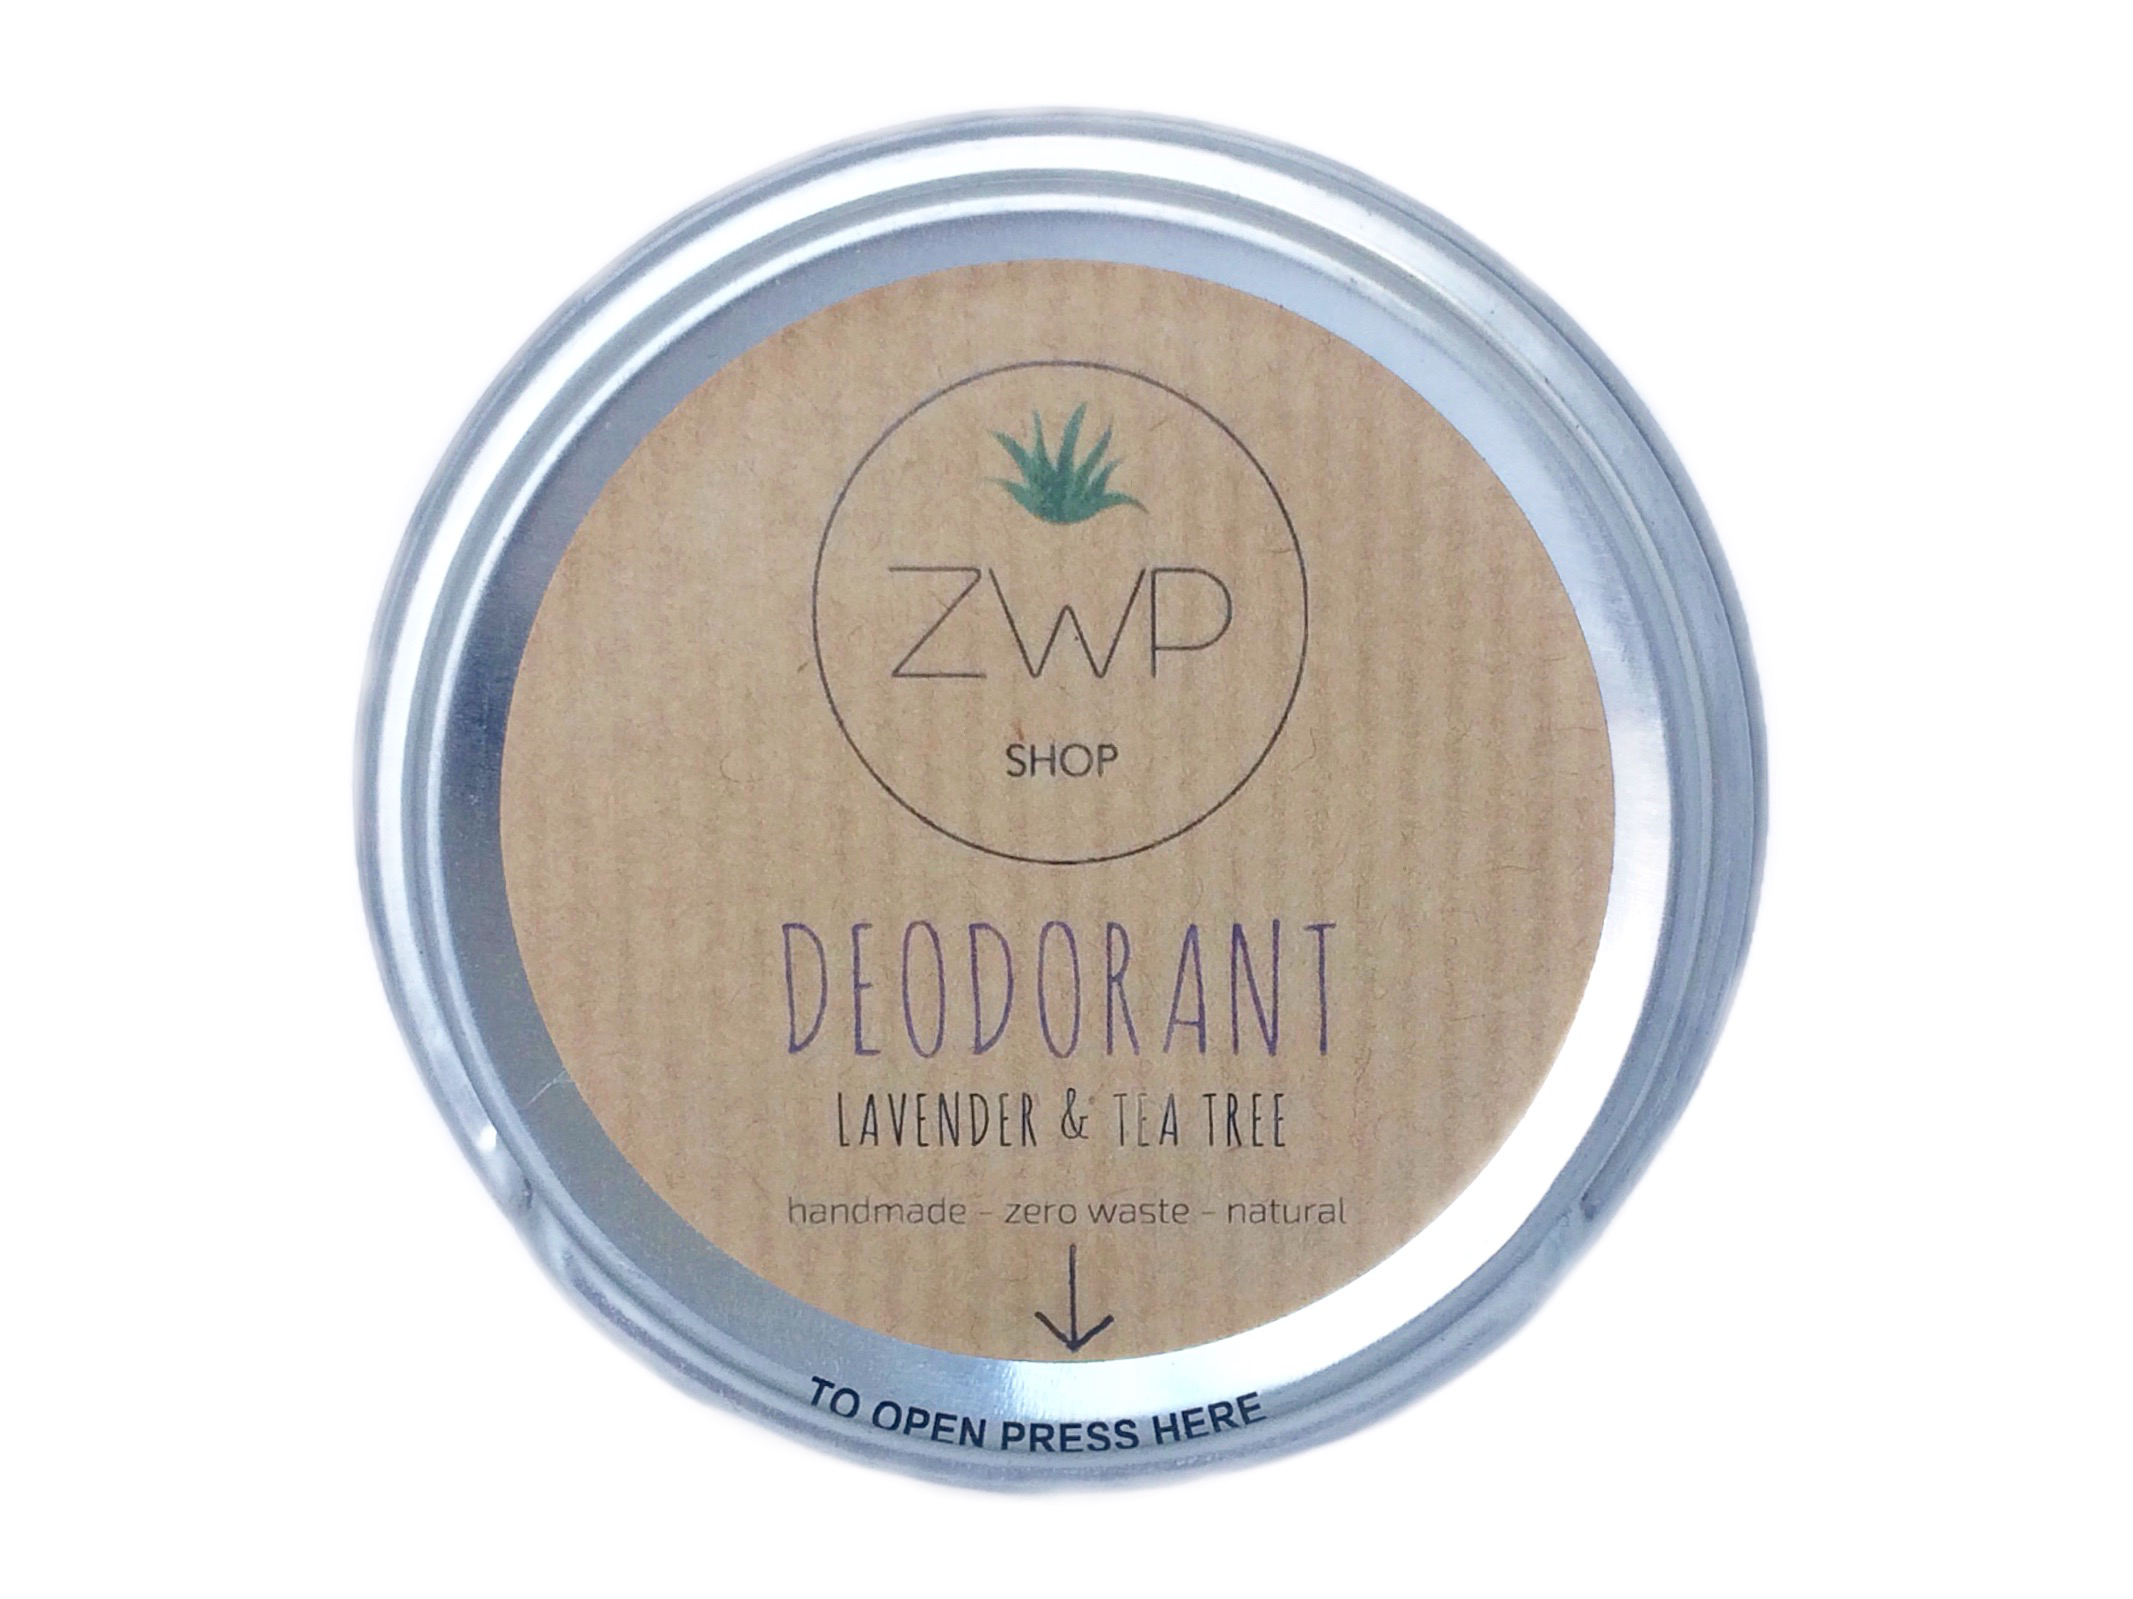 Lavender & Tea Tree Deodorant - The Weekly Shop | Plastic Free Online Shop